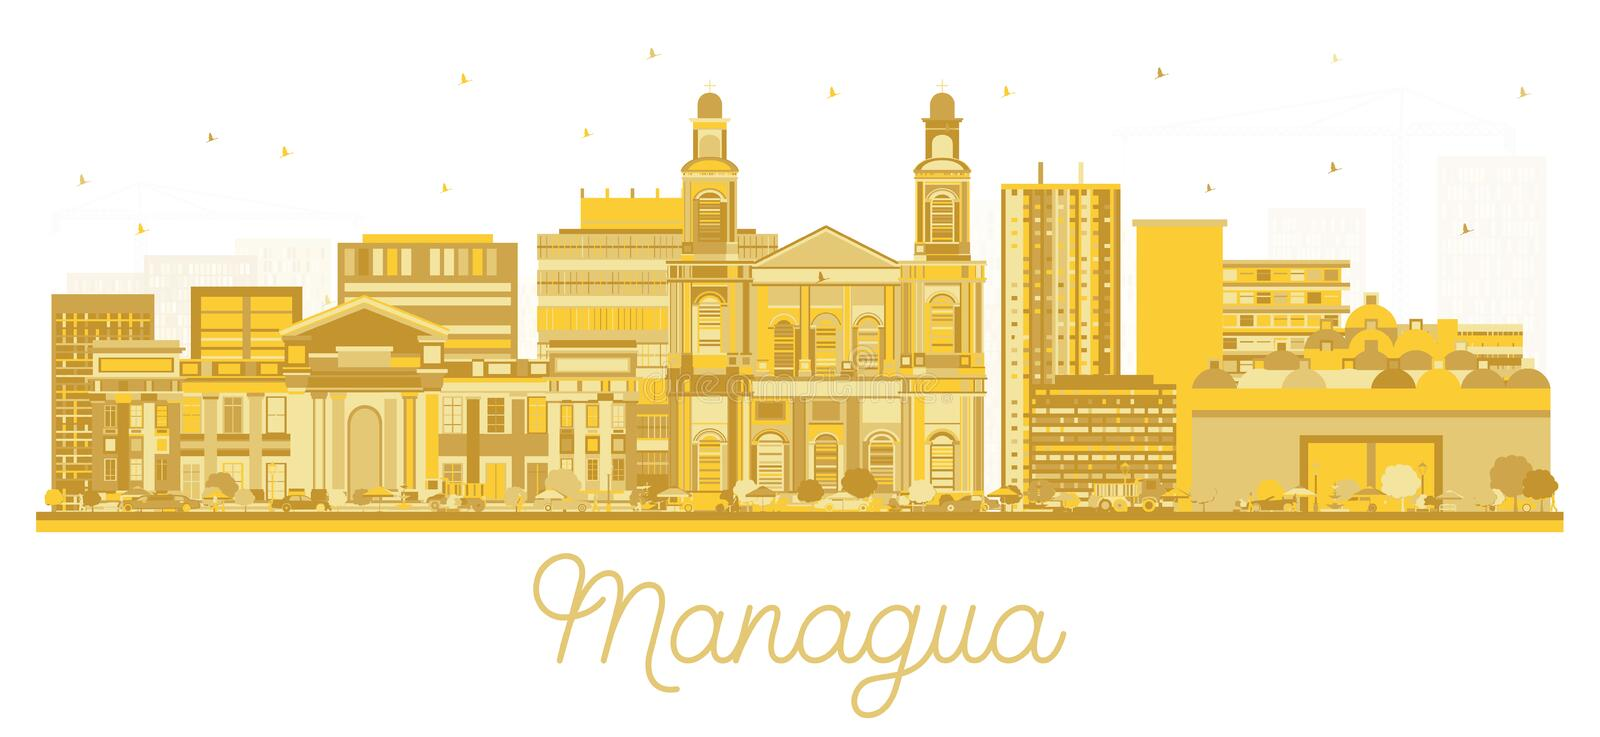 Managua Nicaragua City Skyline Silhouette with Golden Buildings Isolated on White vector illustration